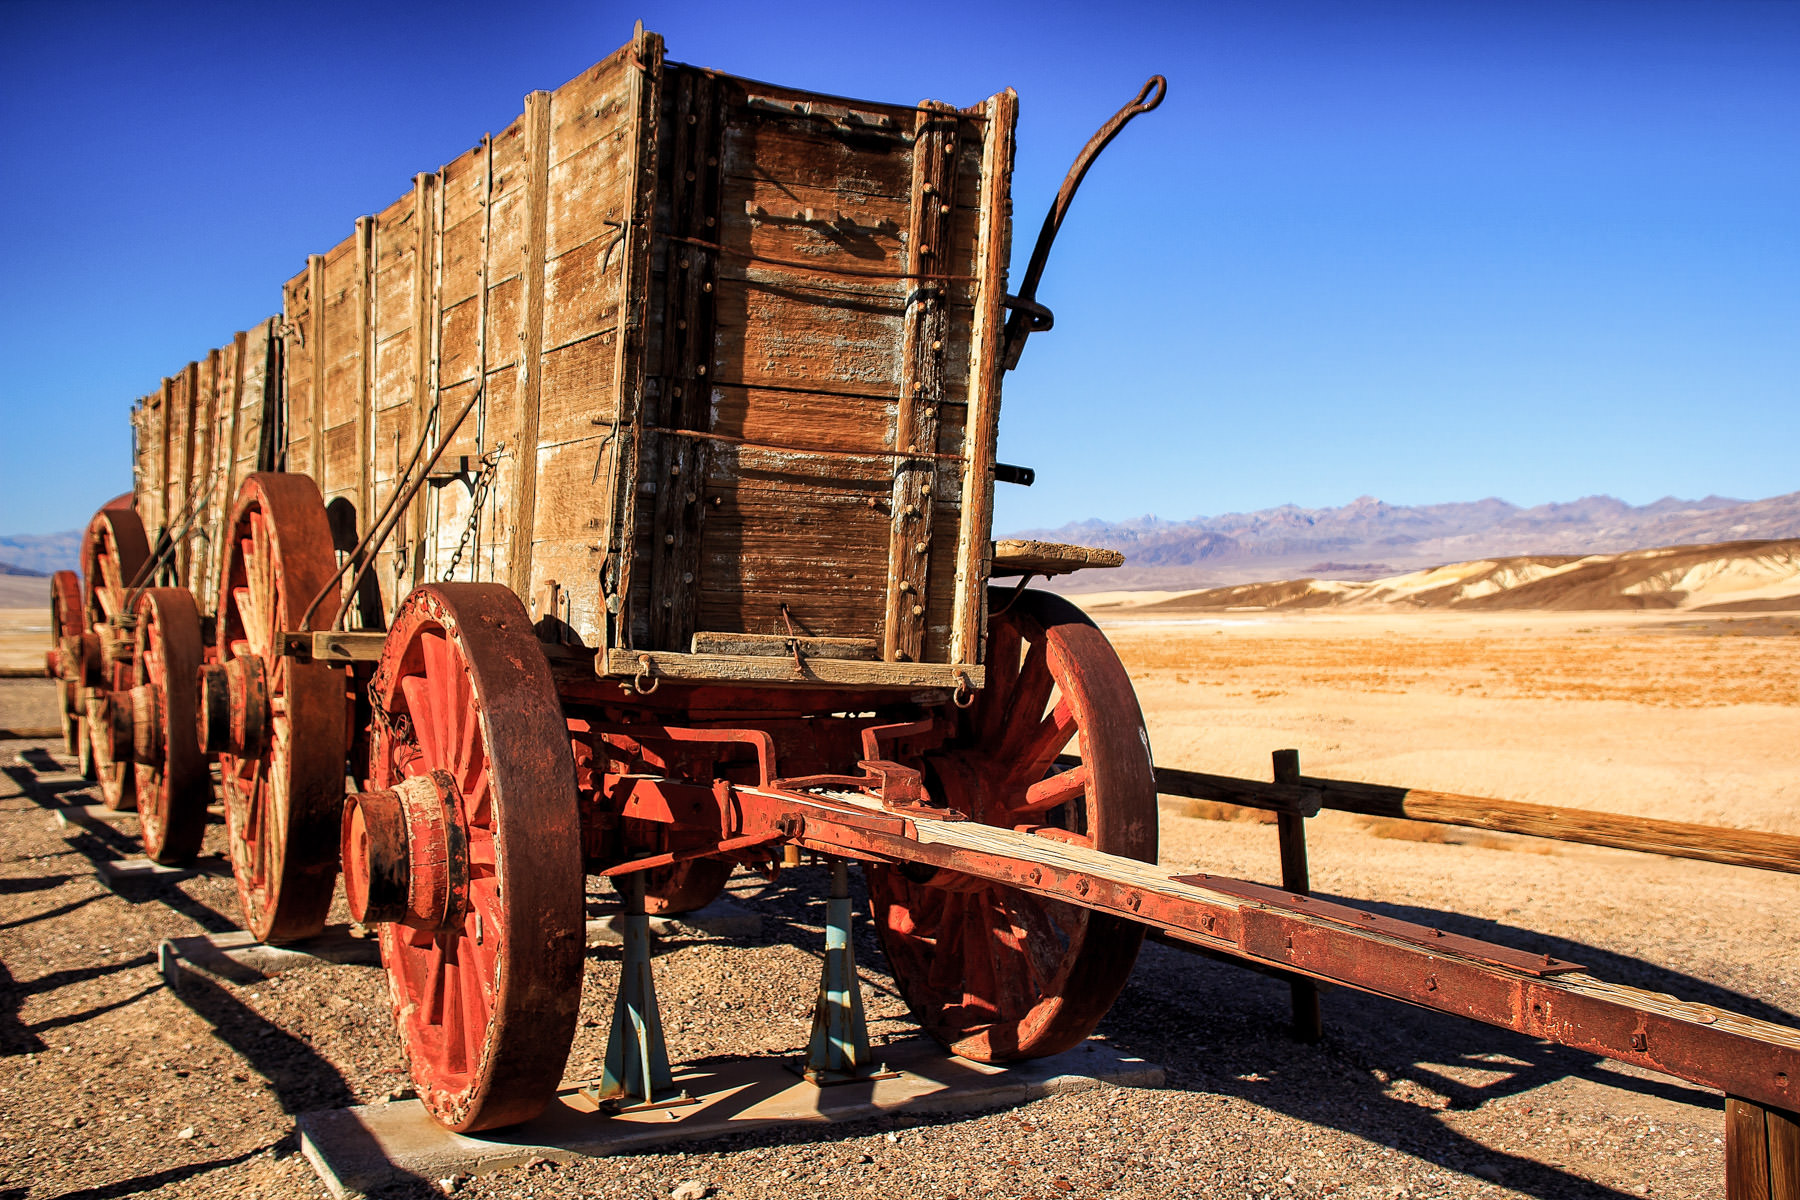 Old wagons for hauling borax on display in Death Valley National Park, California.